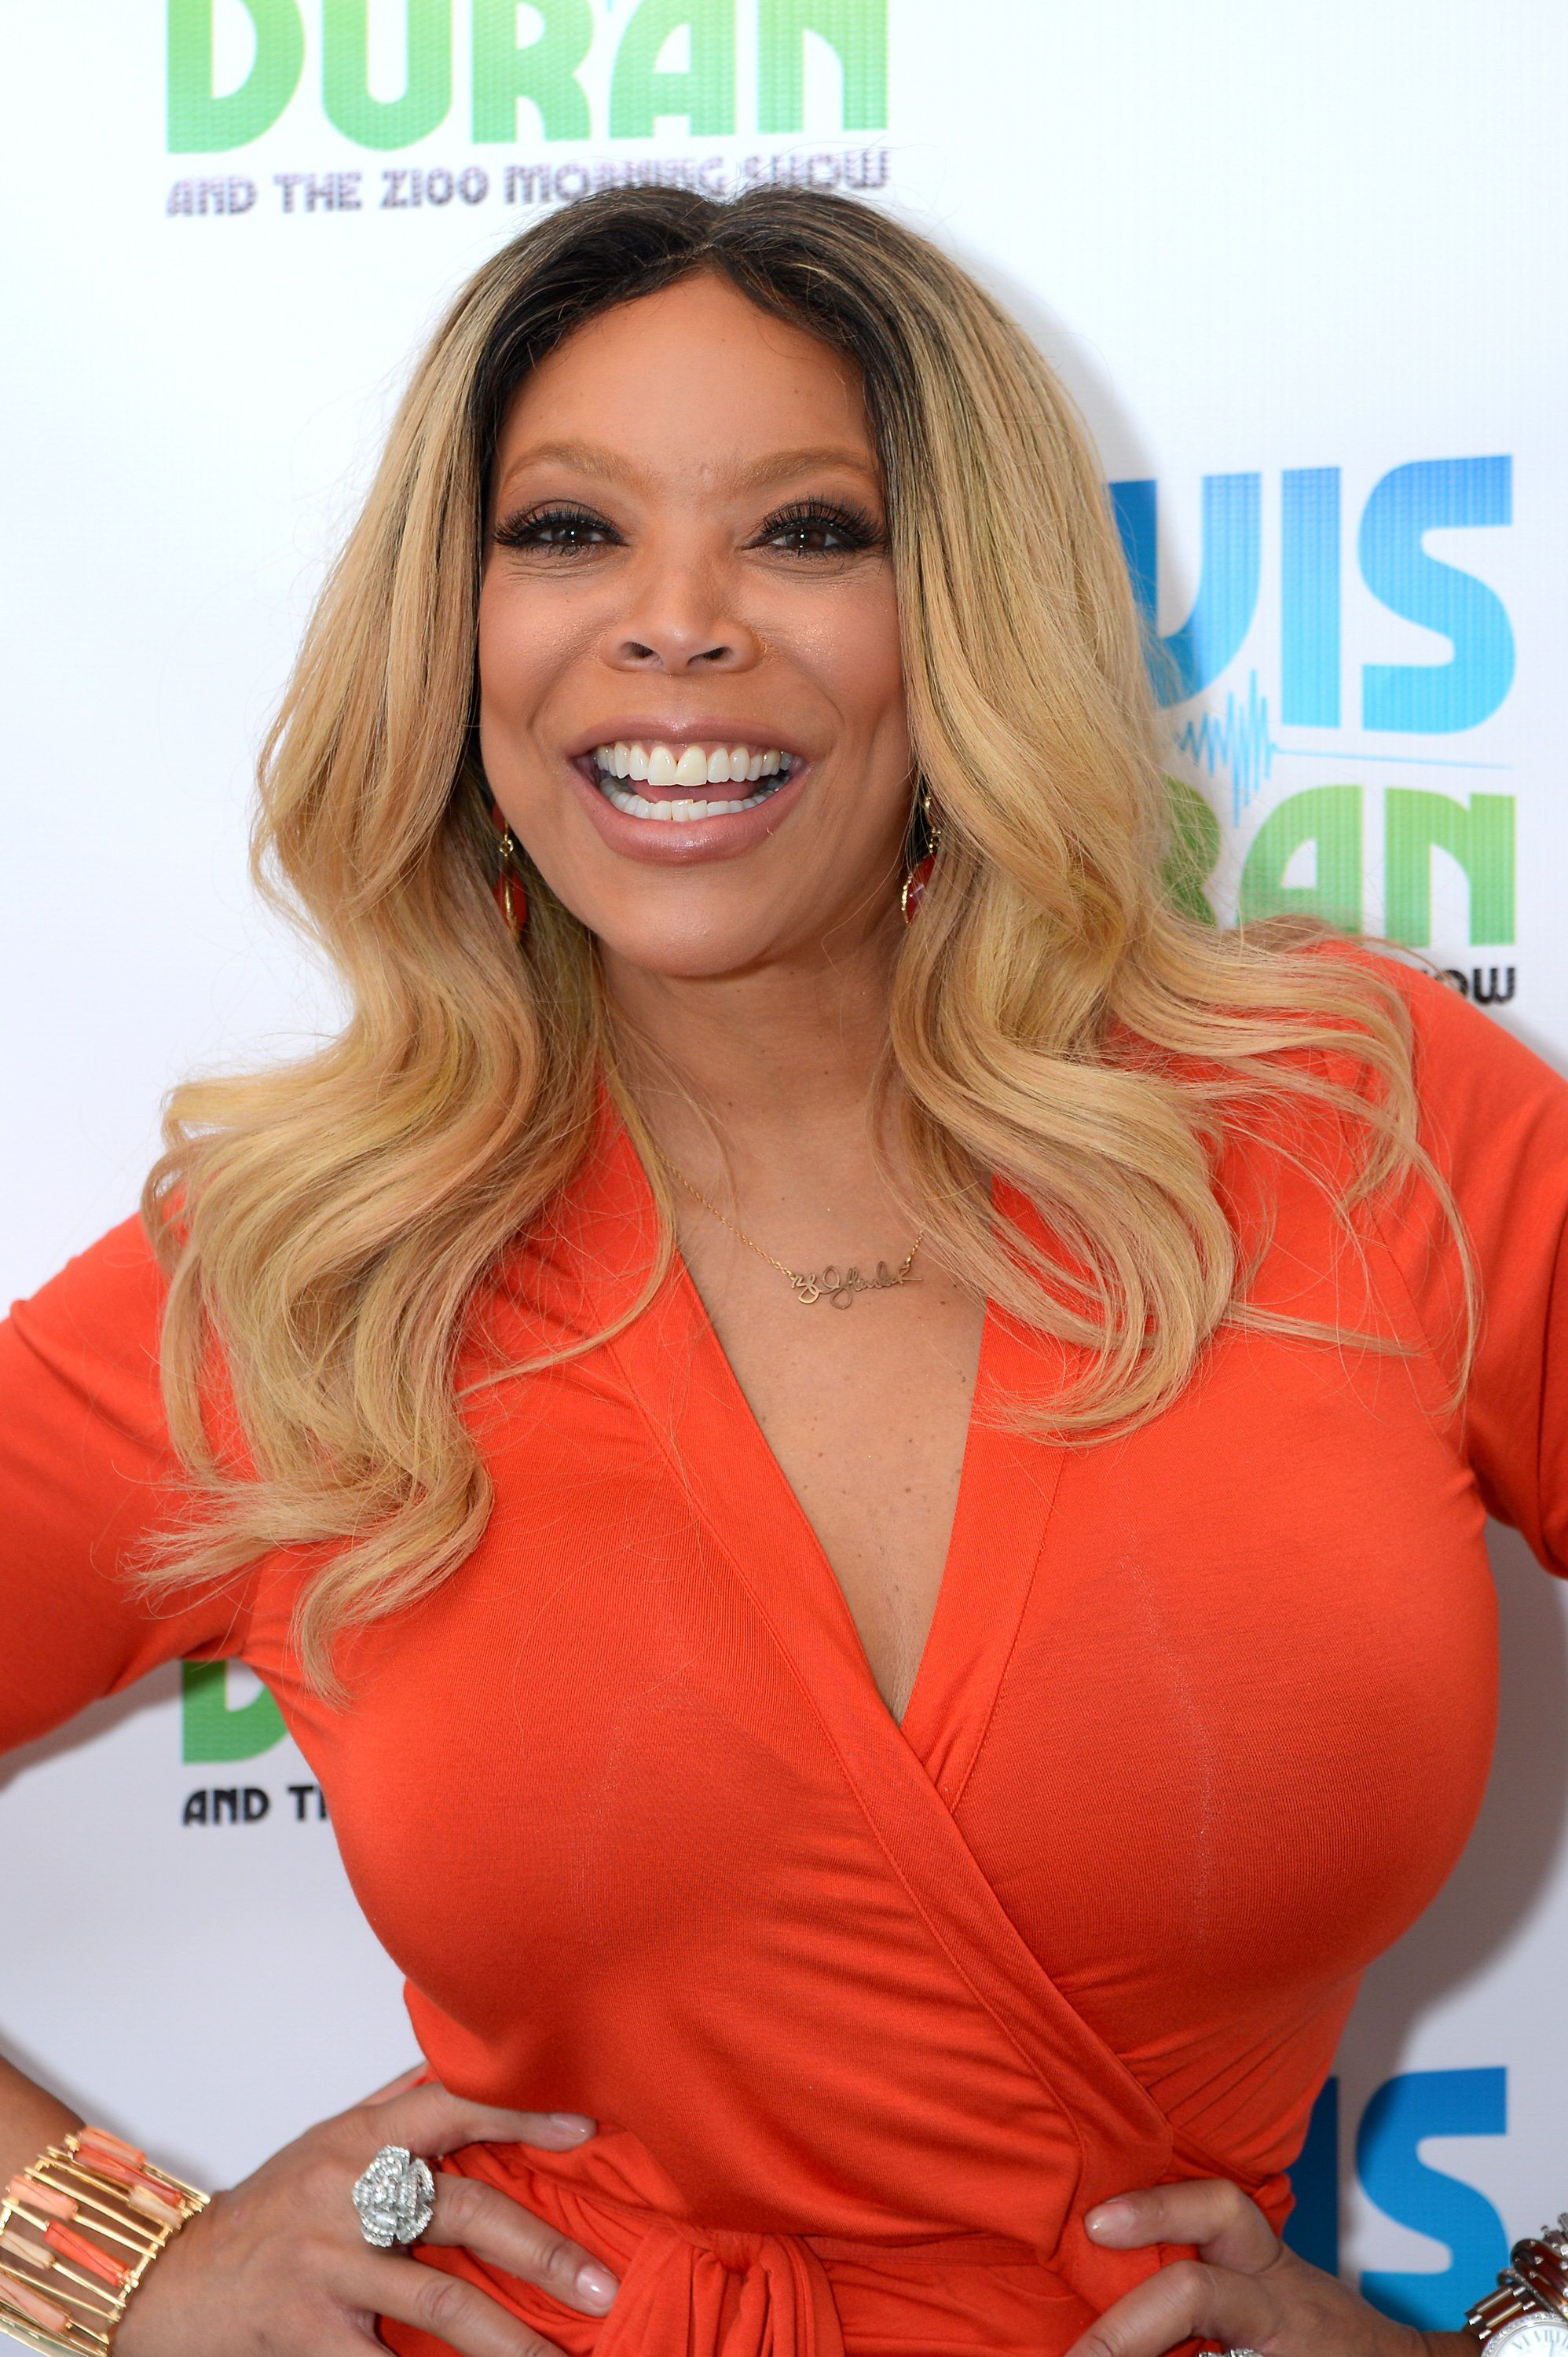 NEW YORK, NY - SEPTEMBER 08:  TV host Wendy Williams poses for a photo during The Elvis Duran Z100 Morning Show at Z100 Studio on September 8, 2015 in New York City.  (Photo by Andrew Toth/Getty Images)